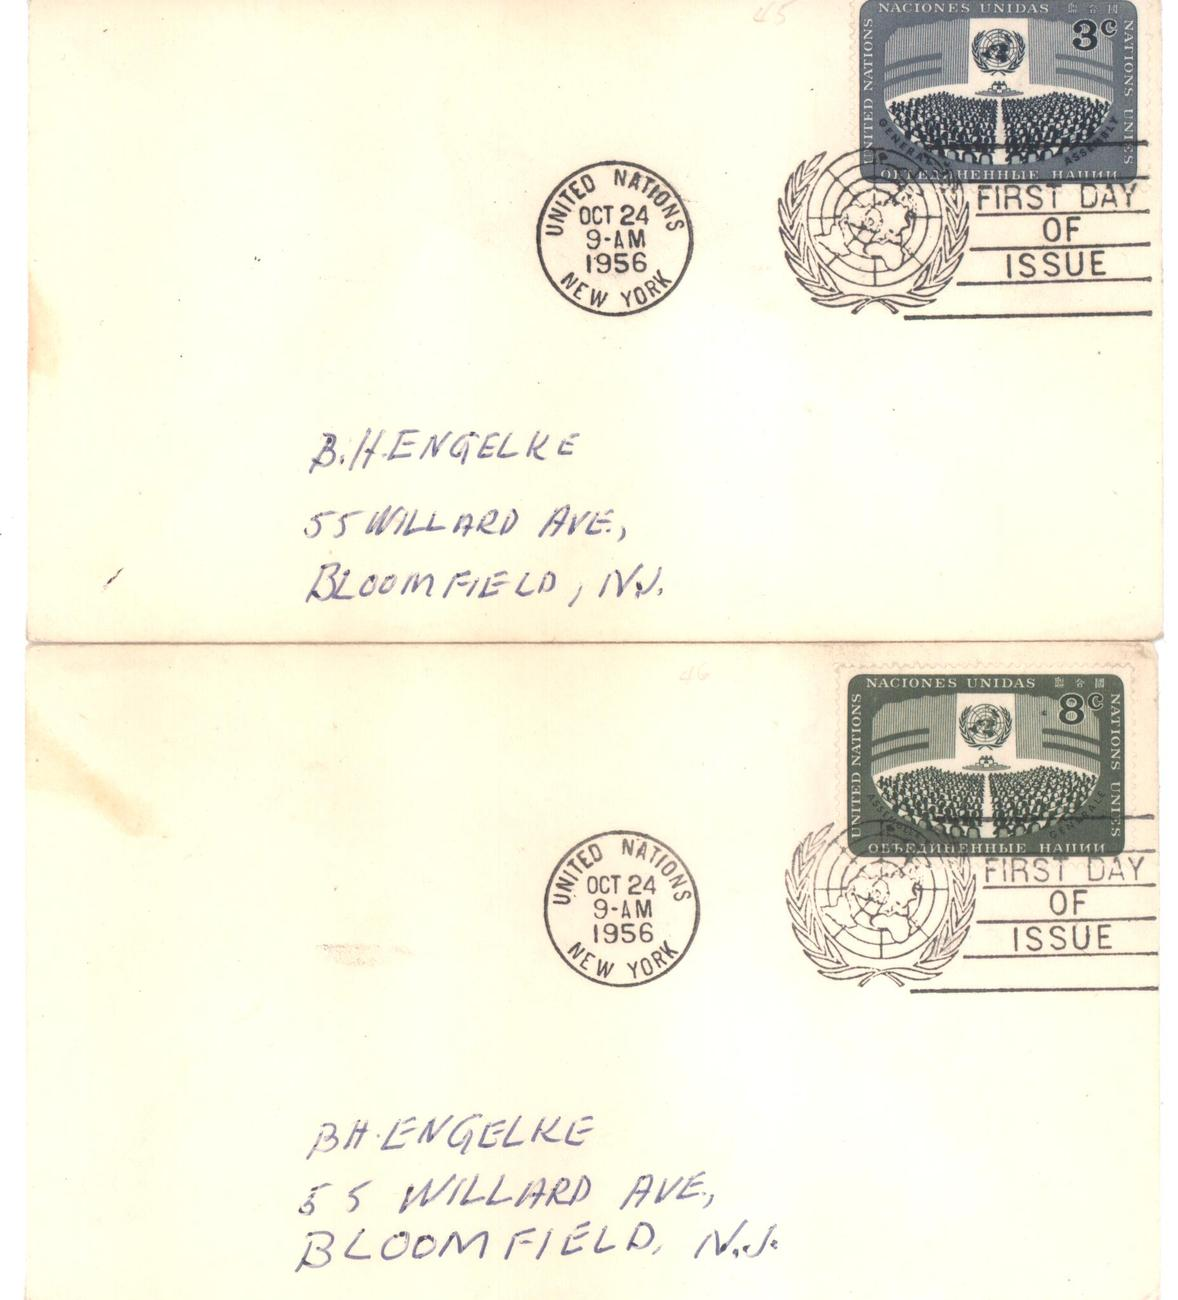 United nations 3   8 cents fdc